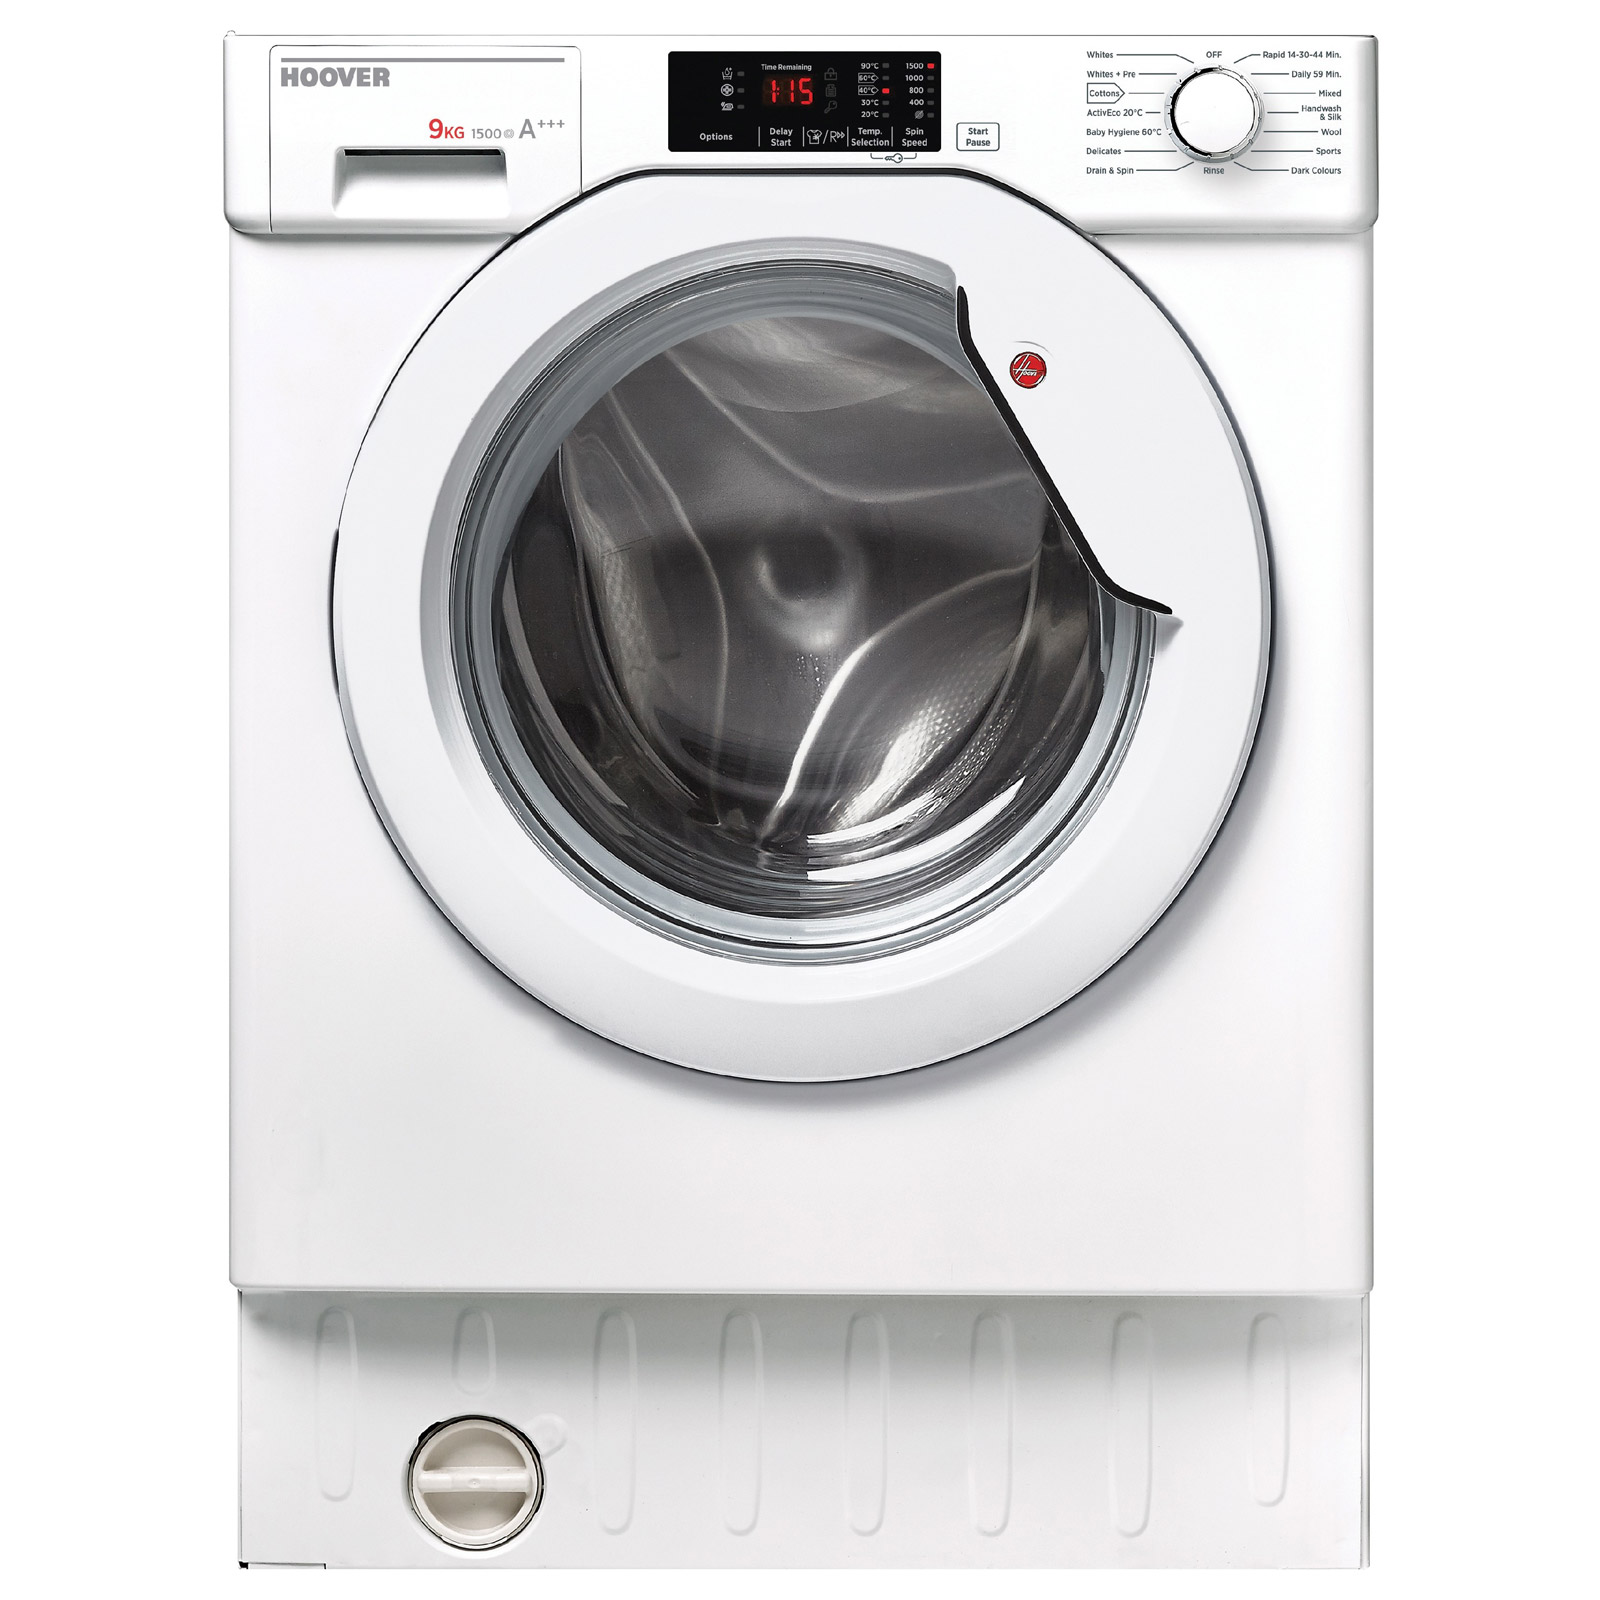 Hoover HBWM915D80 Fully Integrated Washing Machine, 1500rpm 9kg A+++